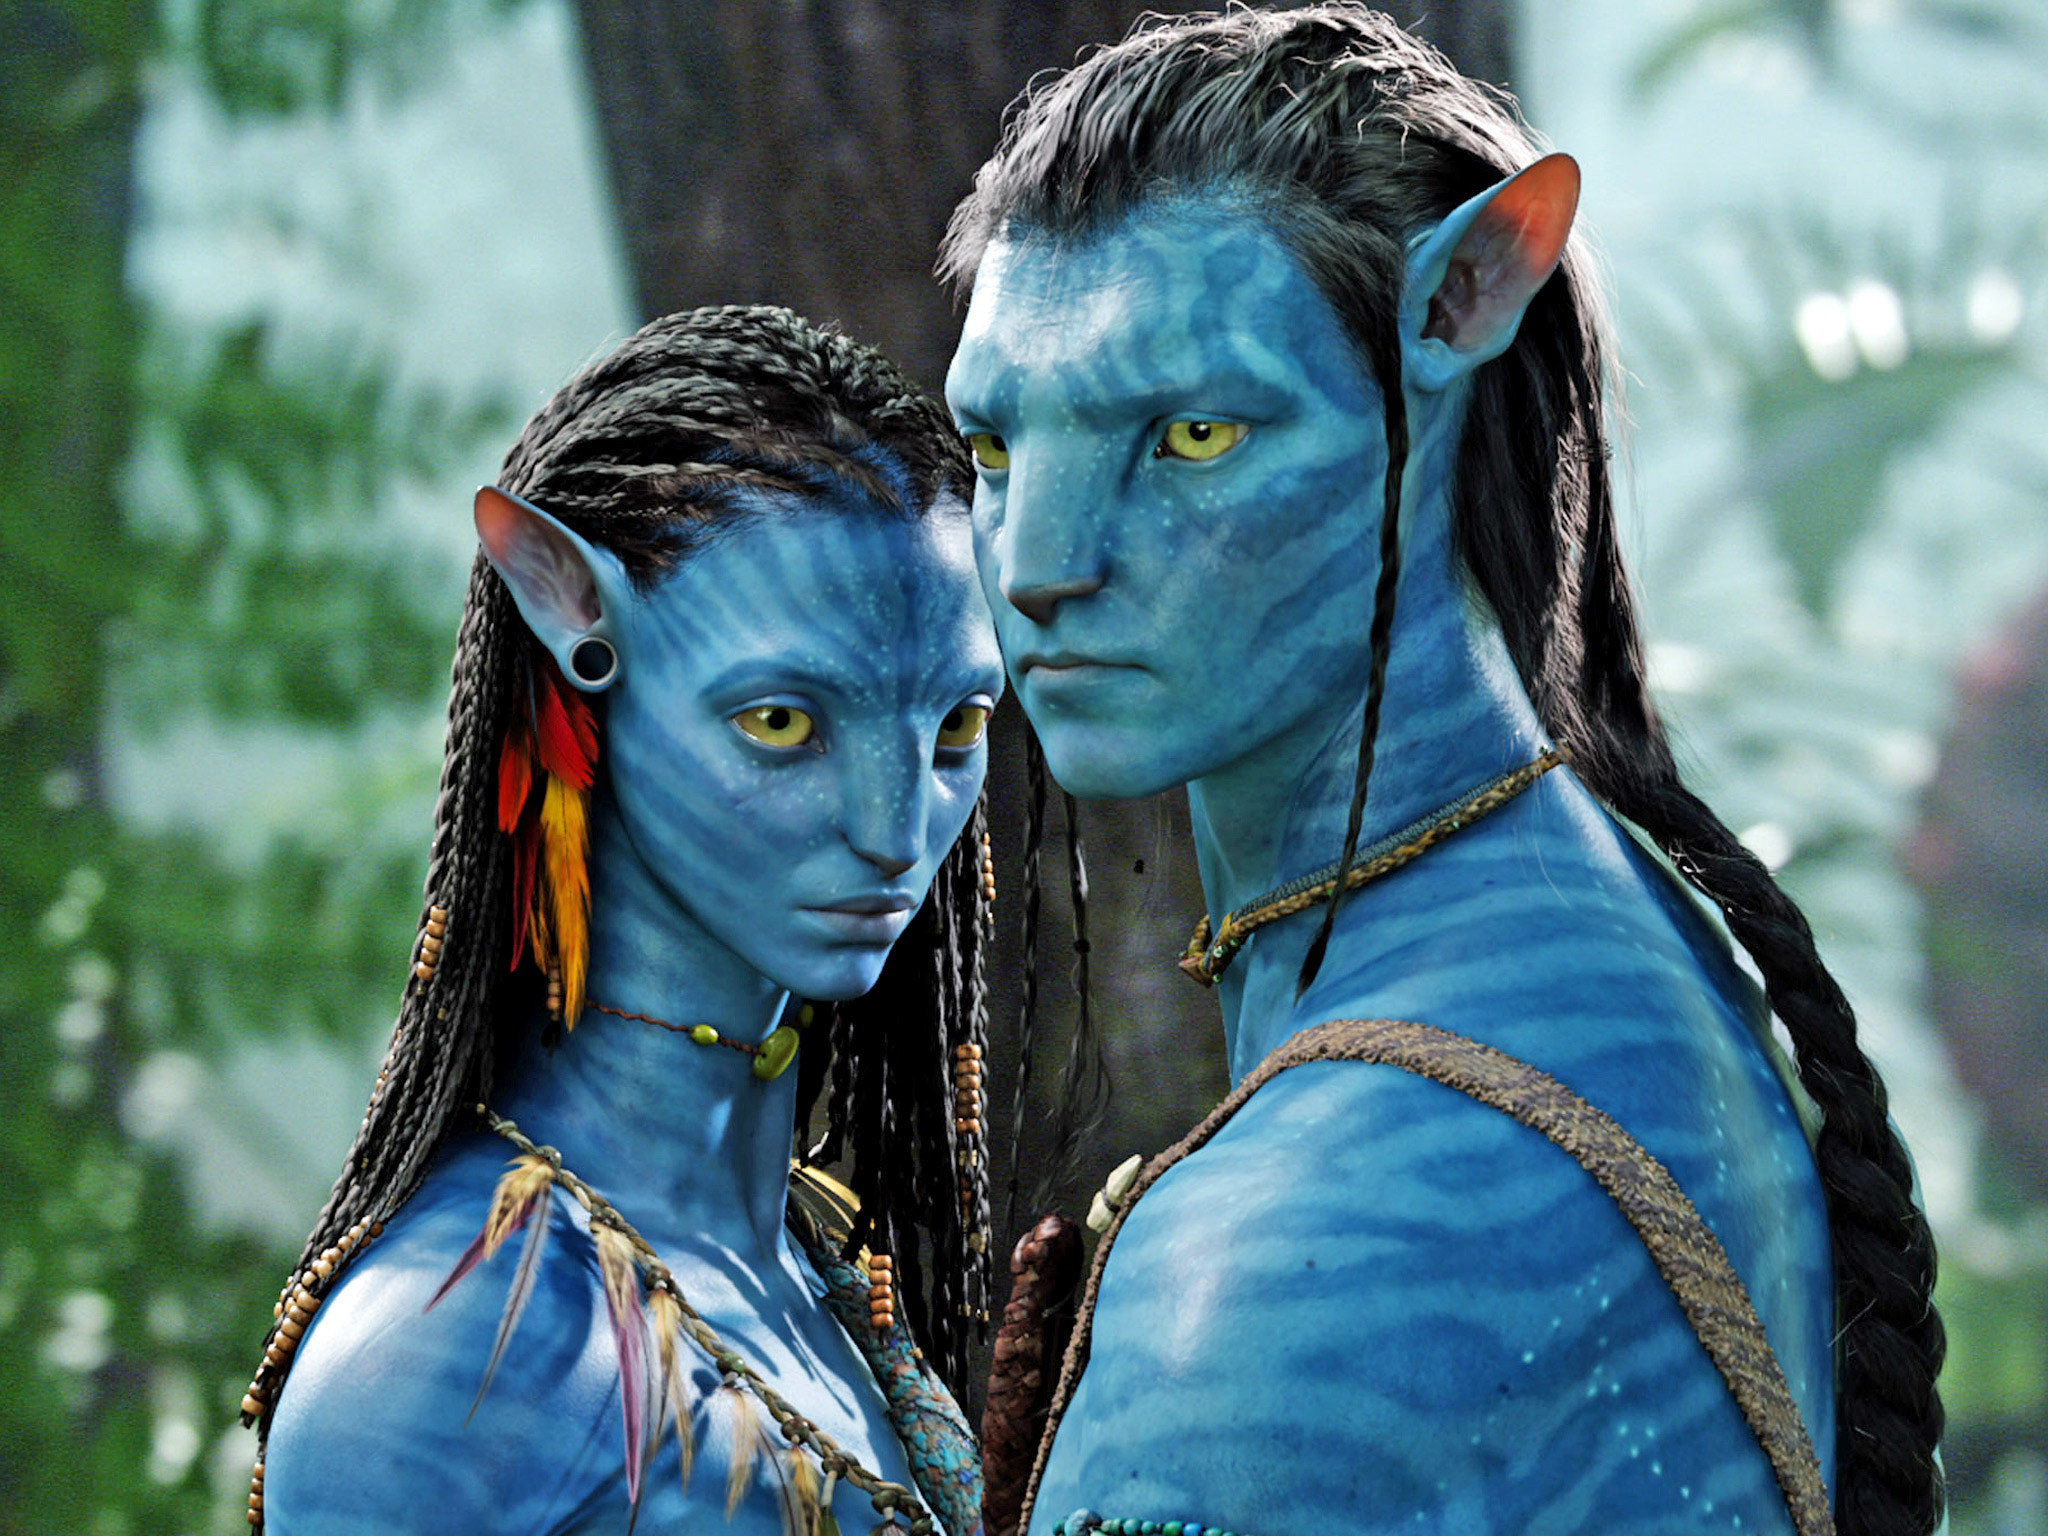 2048x1536 0 1920x1080 Avatar Hd Wallpapers 1080p allofpicts  Avatar Images,  Amazing 33 Wallpapers of Avatar, Top Avatar